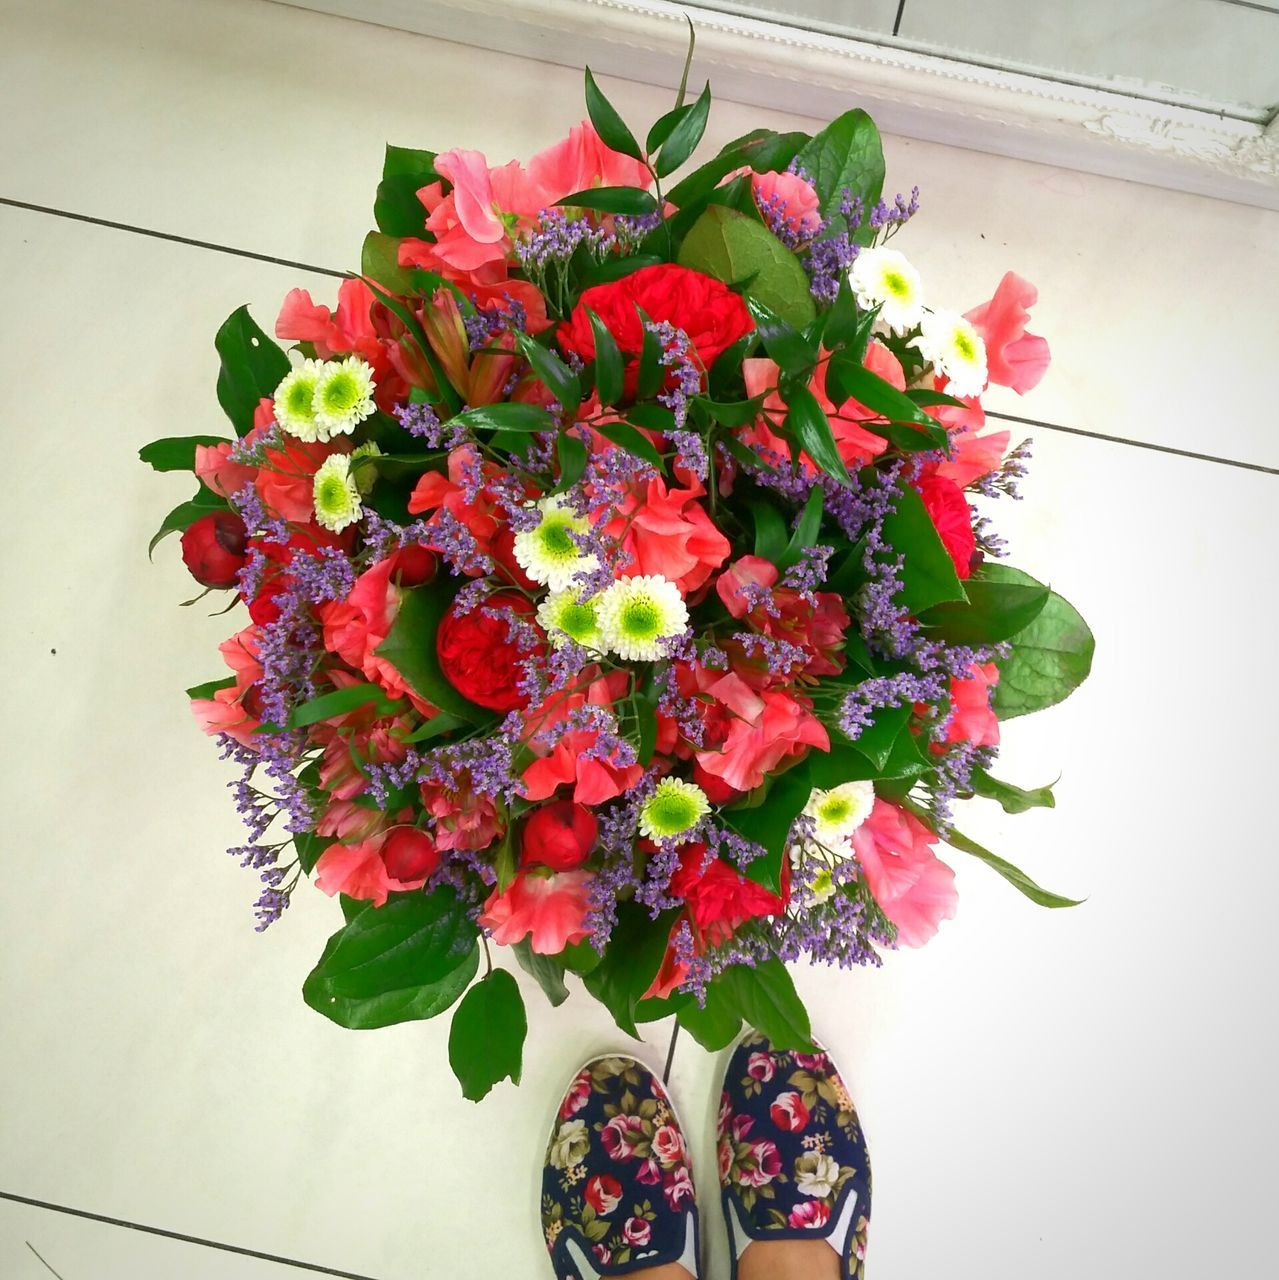 flower, red, growth, freshness, leaf, fragility, beauty in nature, nature, rose - flower, petal, vase, plant, potted plant, indoors, flower head, no people, close-up, day